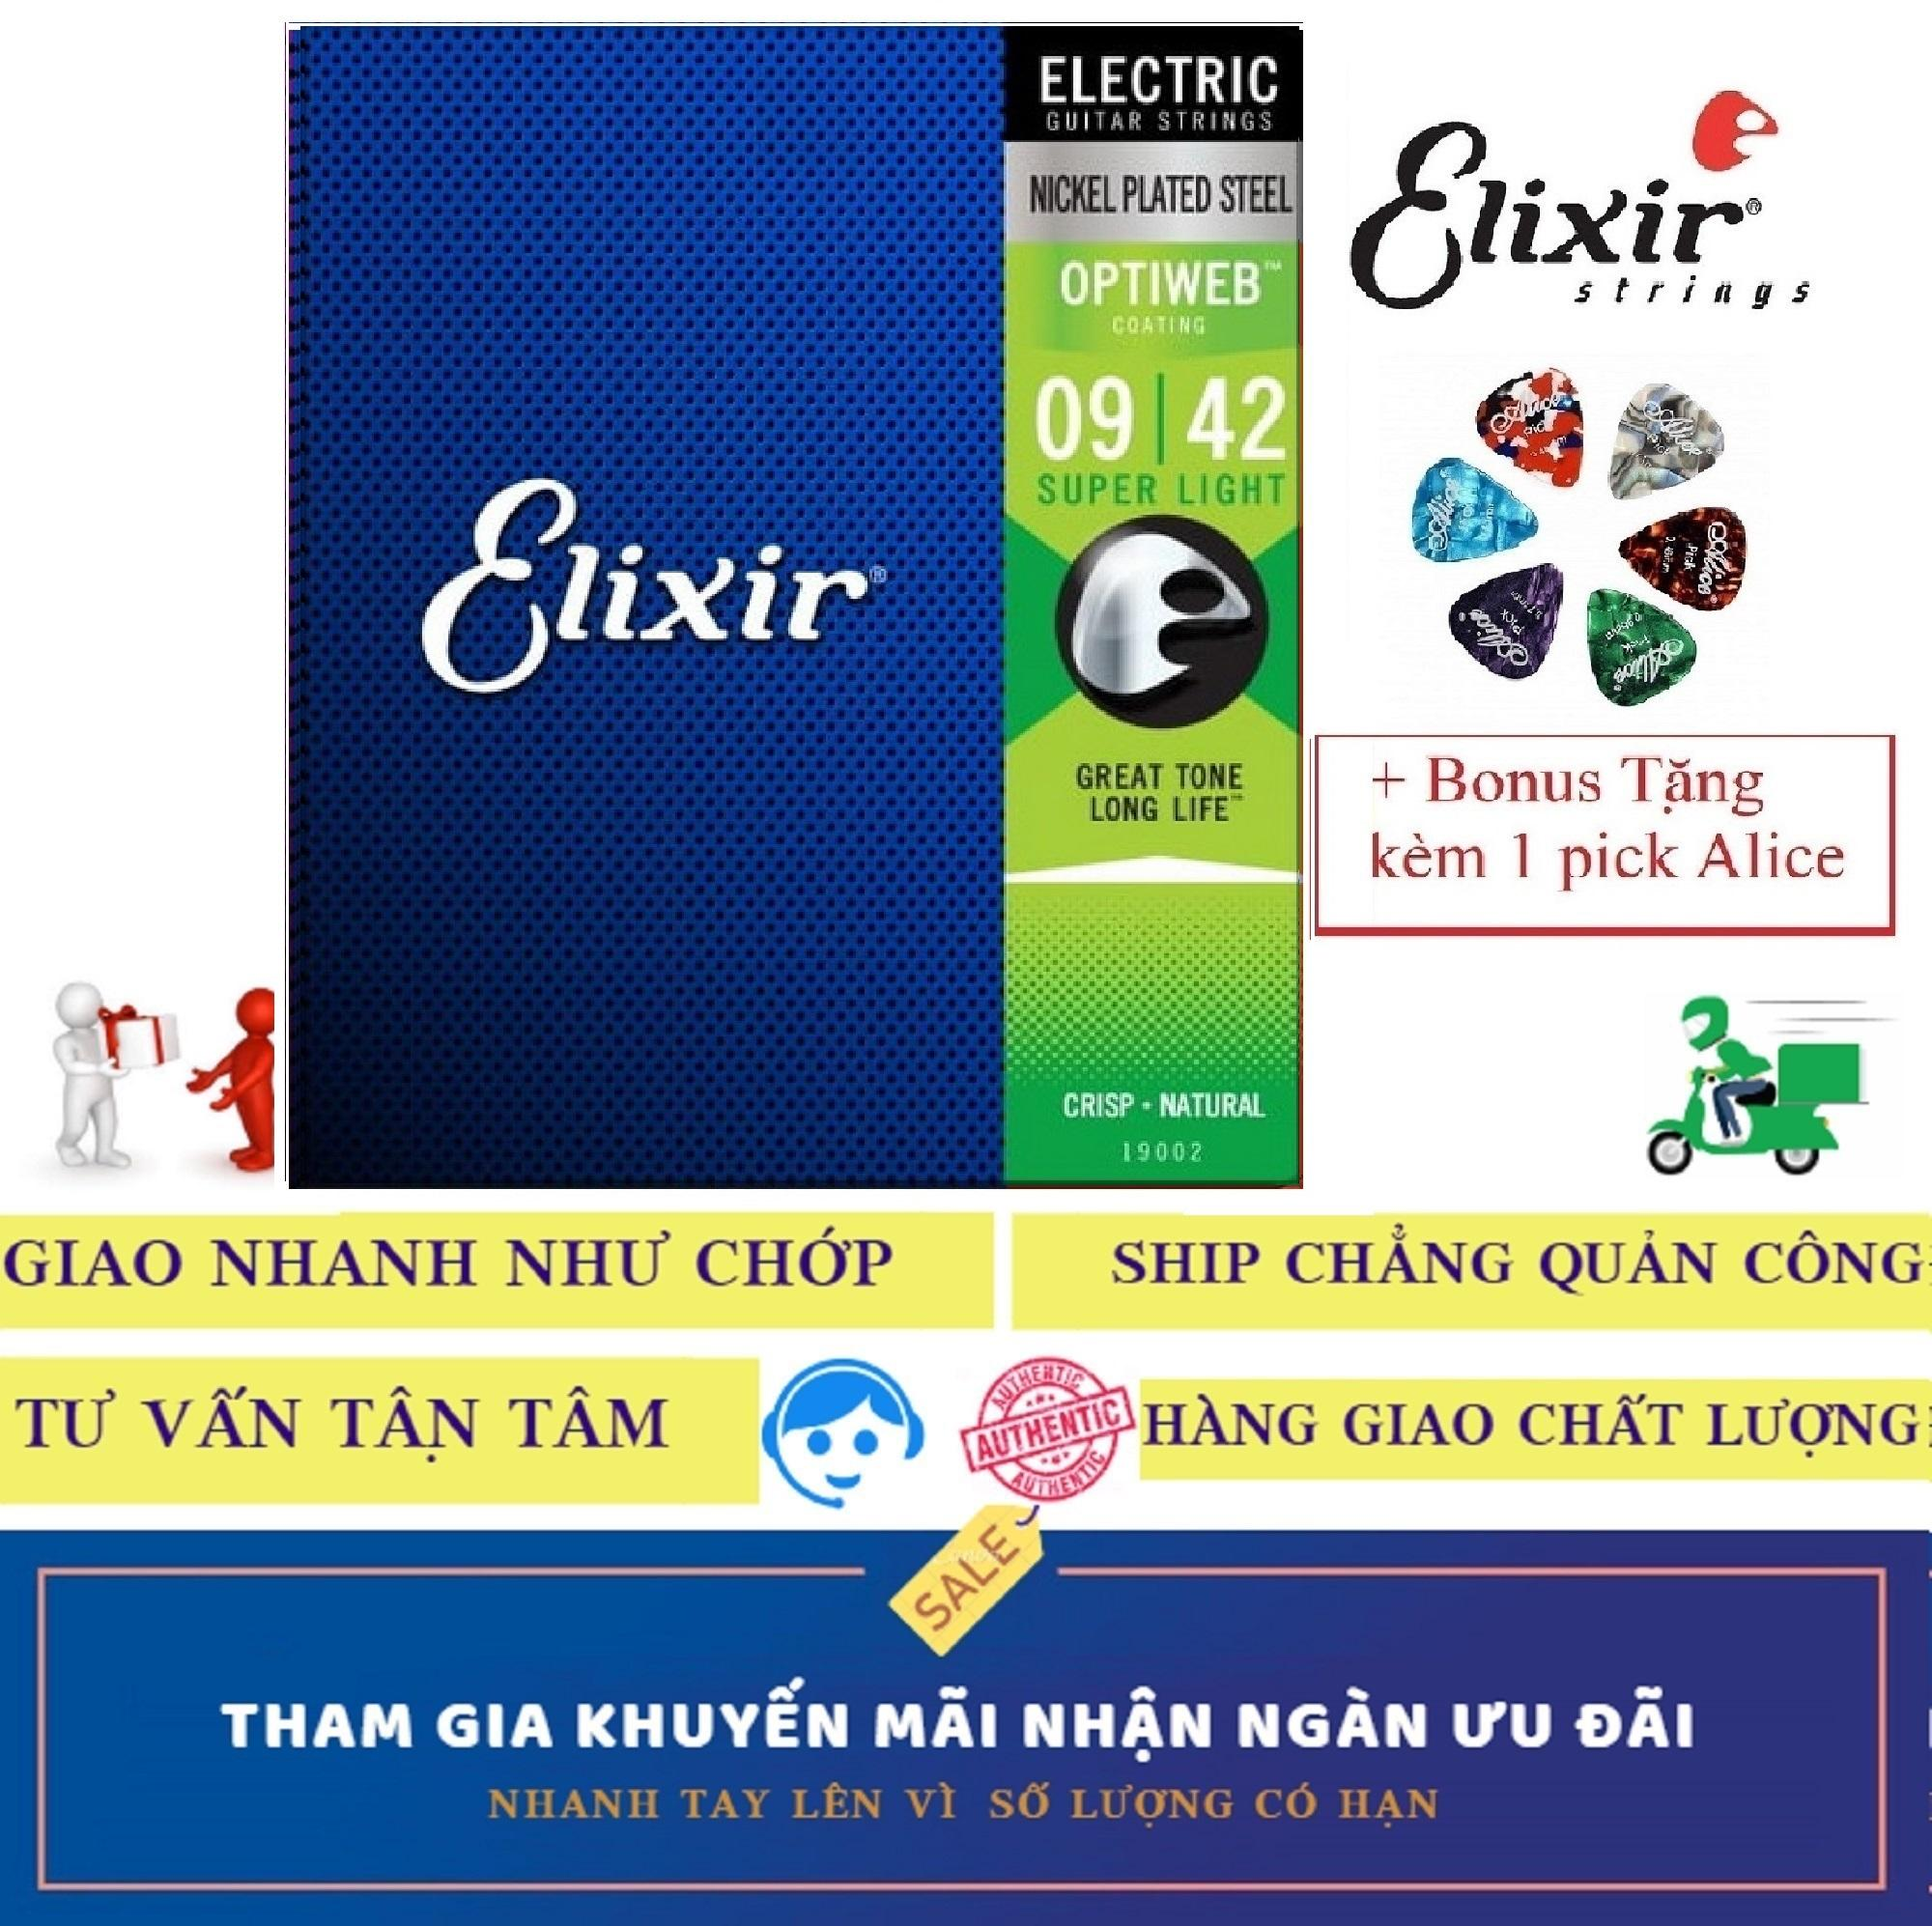 Bộ Dây Đàn Elixir cao cấp 19002 (Cỡ 9 - Super Light) Electric Guitar điện Nickel Plated Steel With OPTIWEB COATING Strings